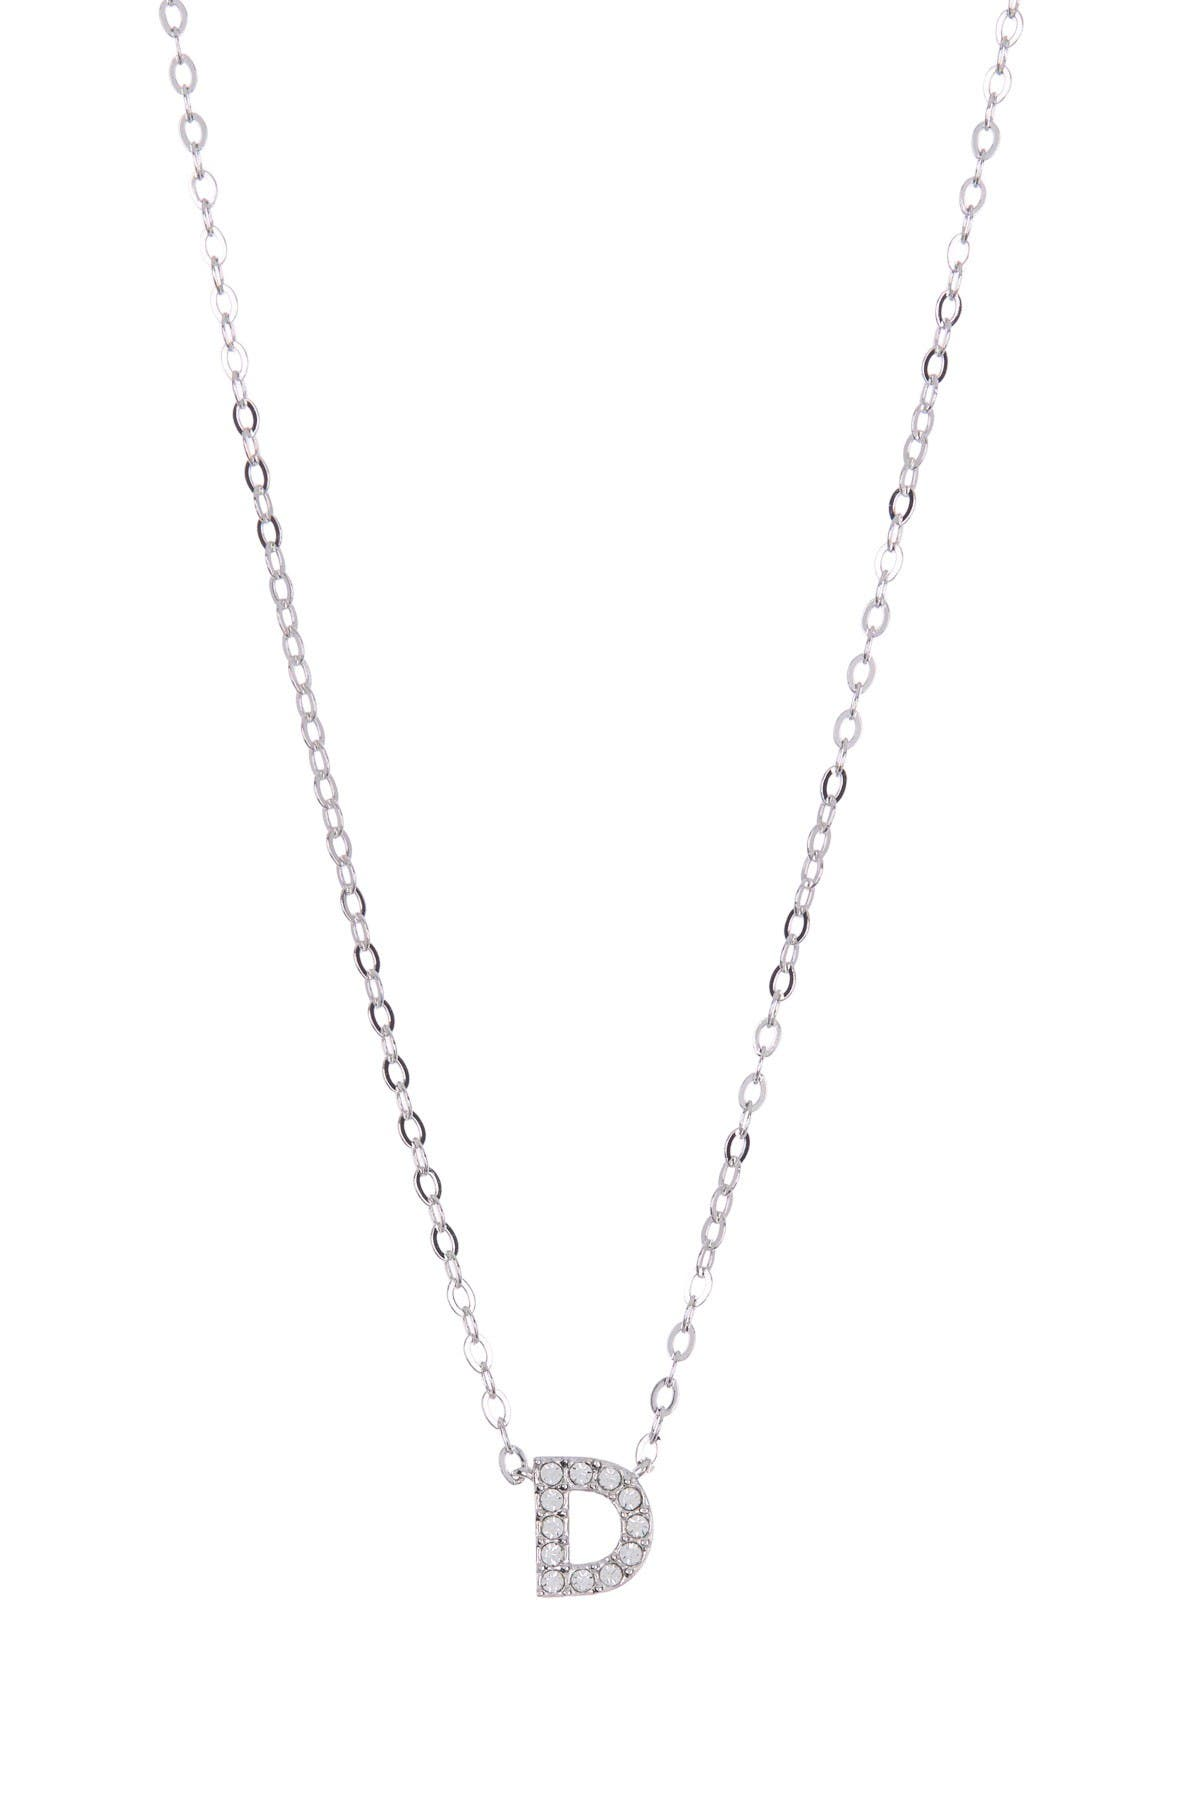 Image of NADRI Pave CZ Initial Pendant Necklace